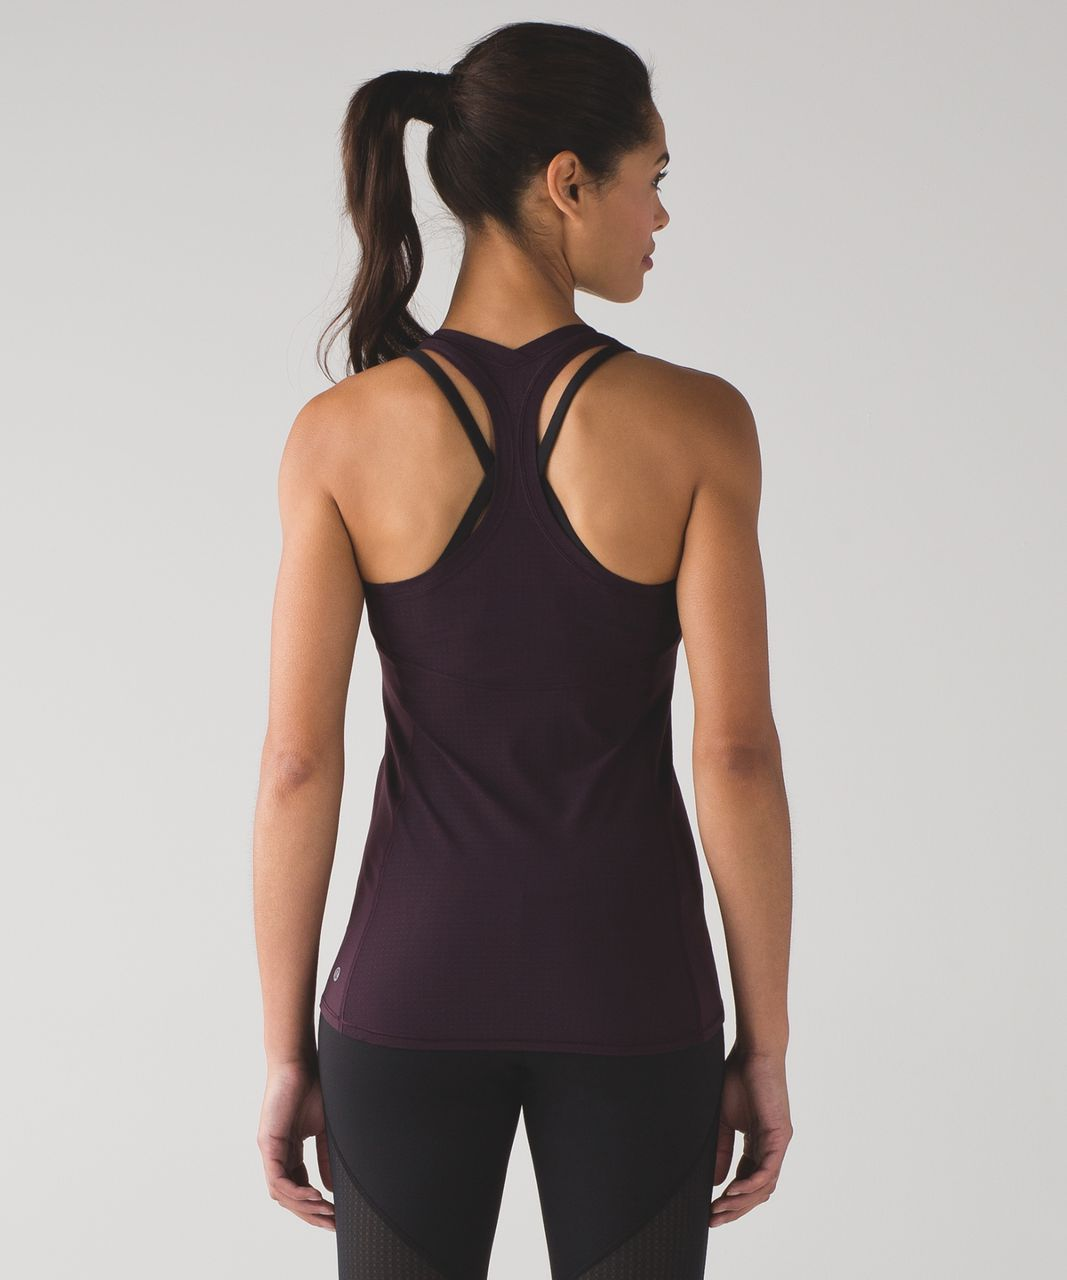 Lululemon Cool Racerback II Deep Breath - Black Cherry